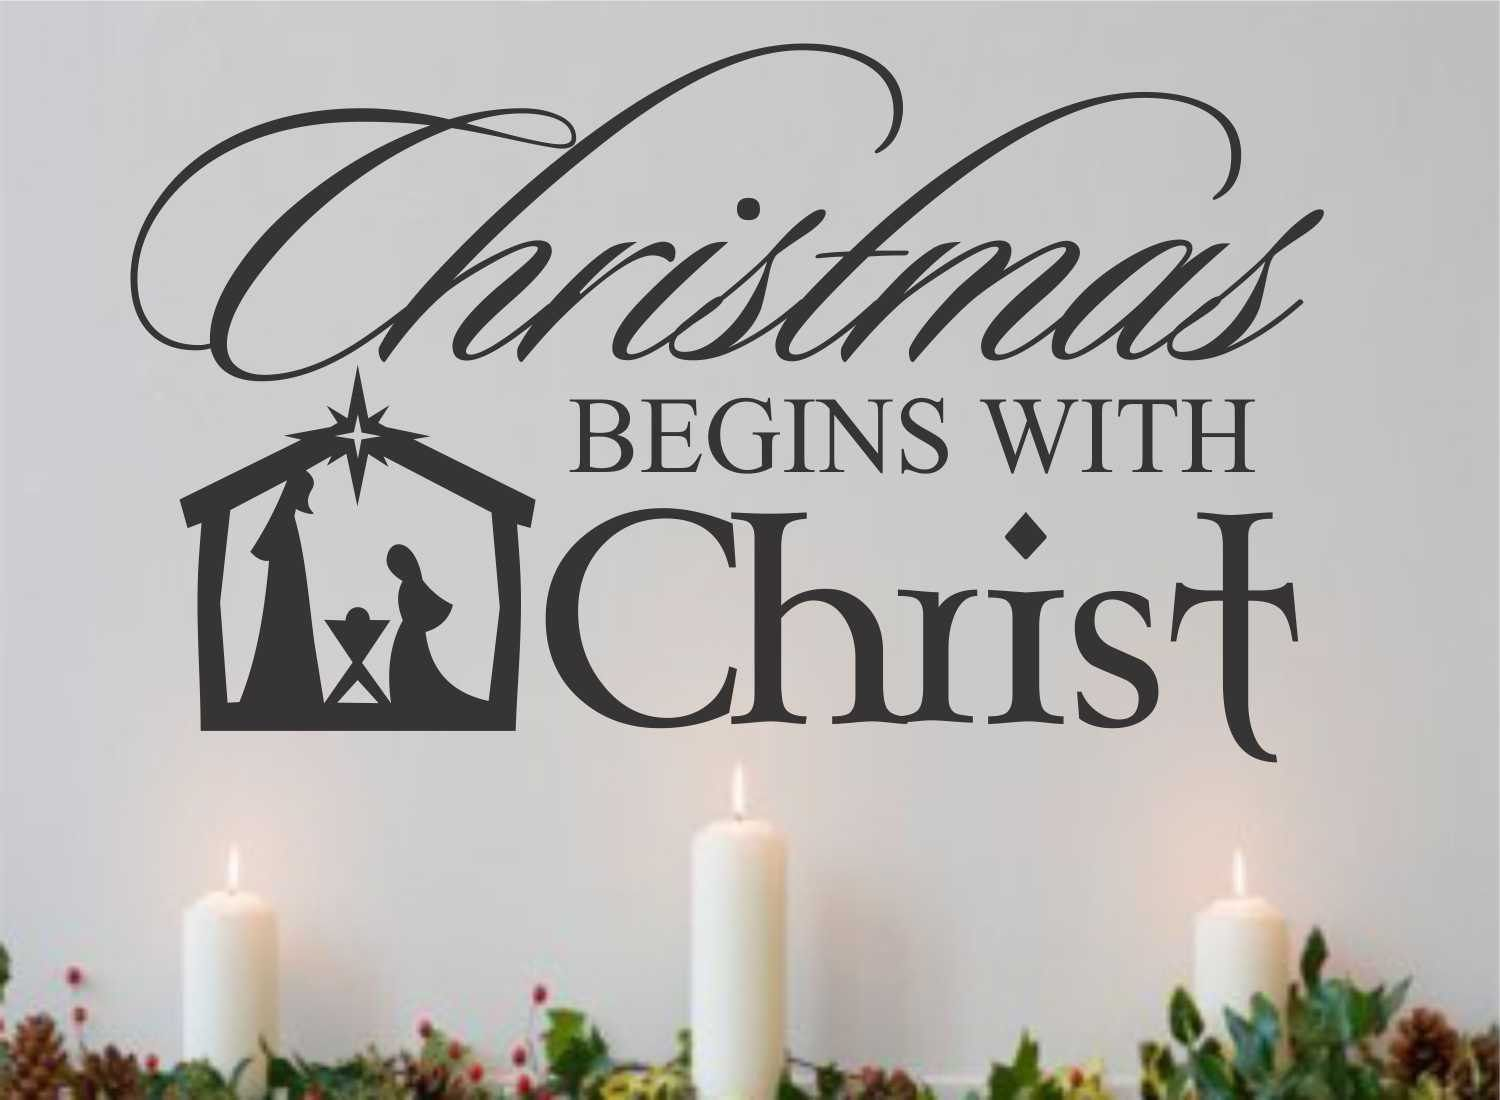 religious vinyl wall lettering christmas begins with christ nativity scene decoration quote - Christmas Quotes Religious